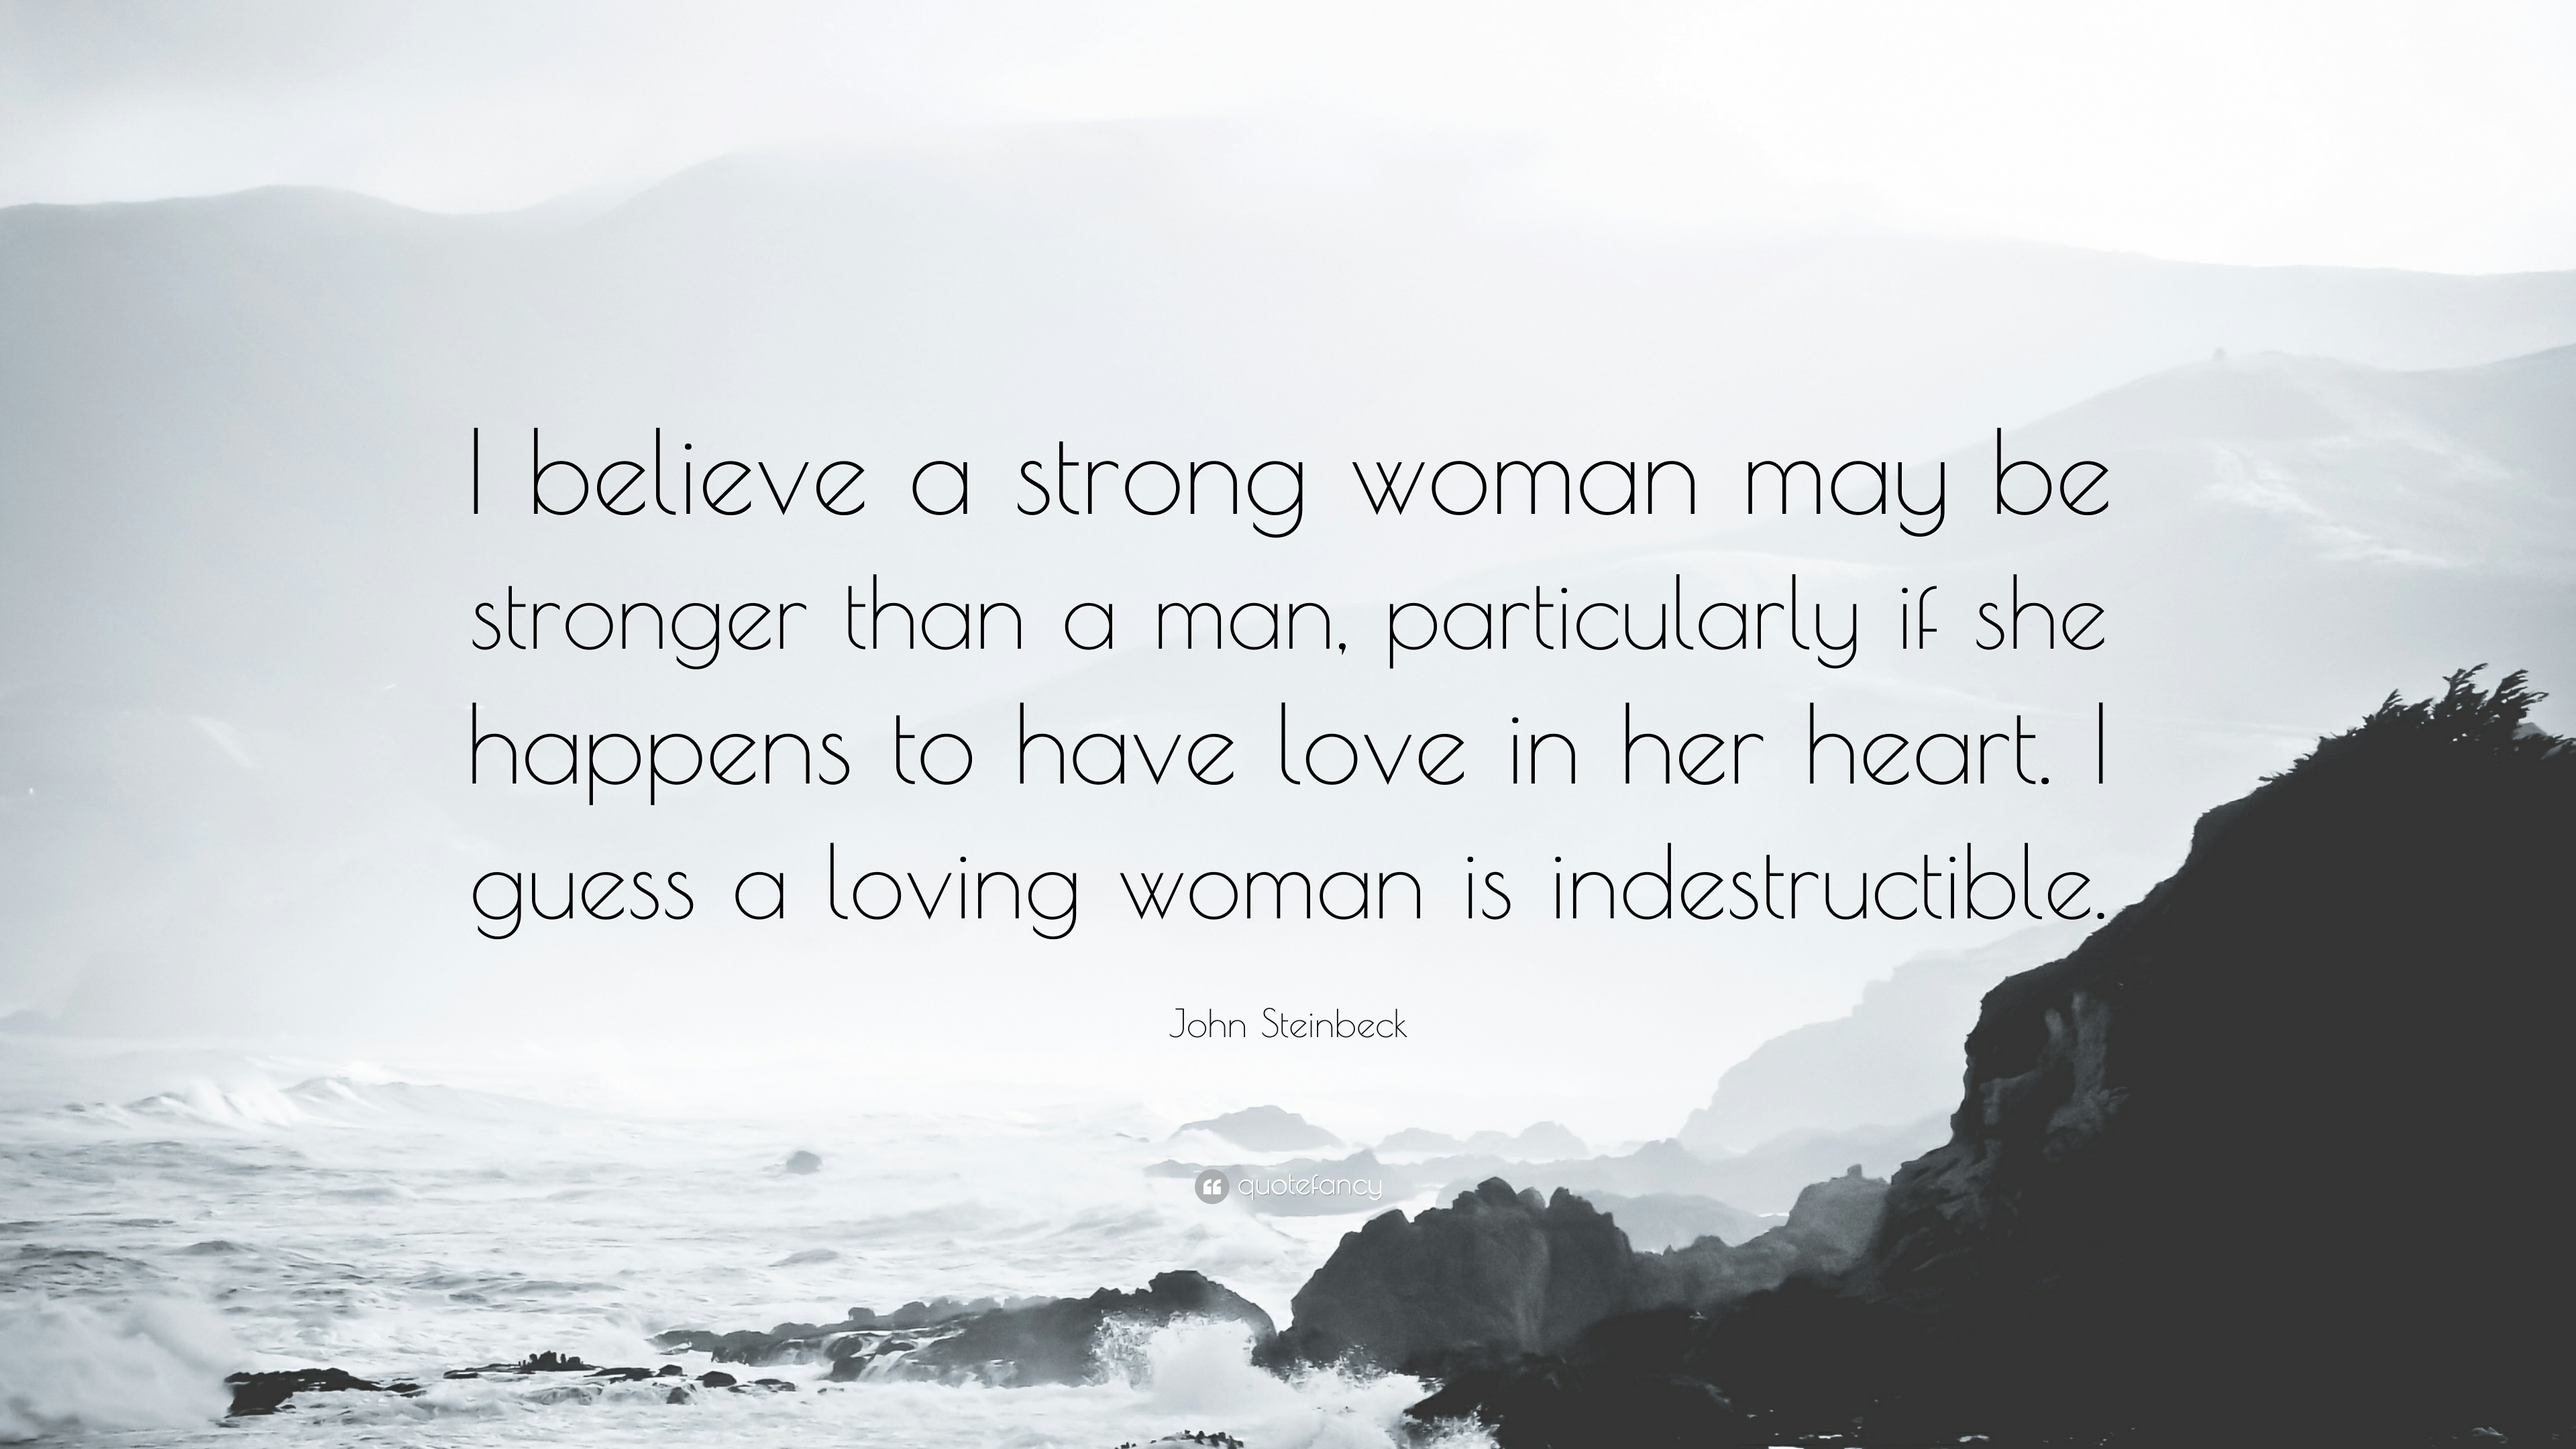 Quotes About Being A Good Woman Quotes About Being A Woman The